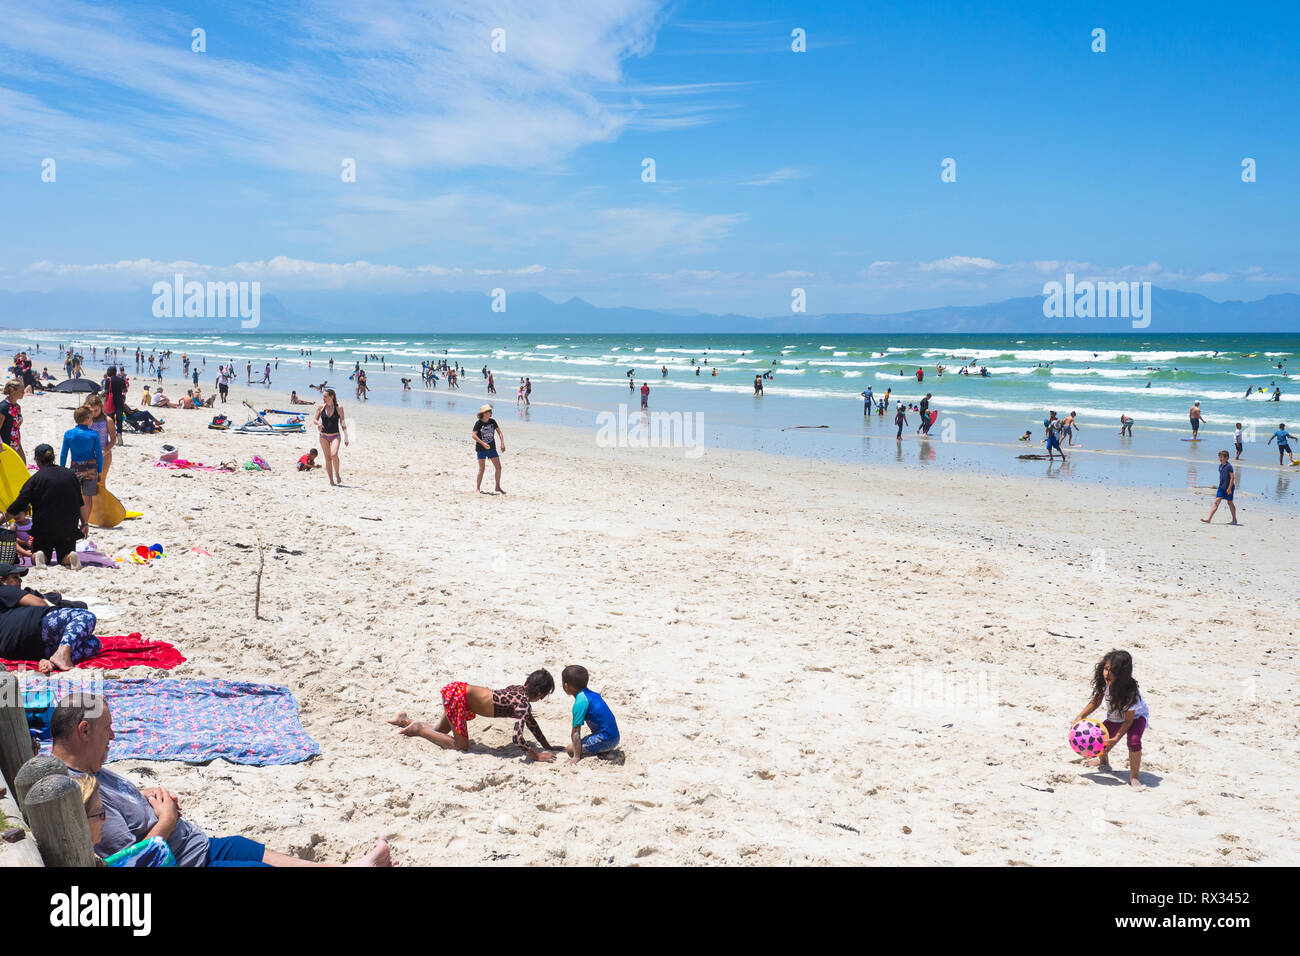 a busy beach day with crowds of beachgoers enjoying themselves on a hot Summer day at Muizenberg, False bay, Cape Peninsula, Cape Town, South Africa - Stock Image